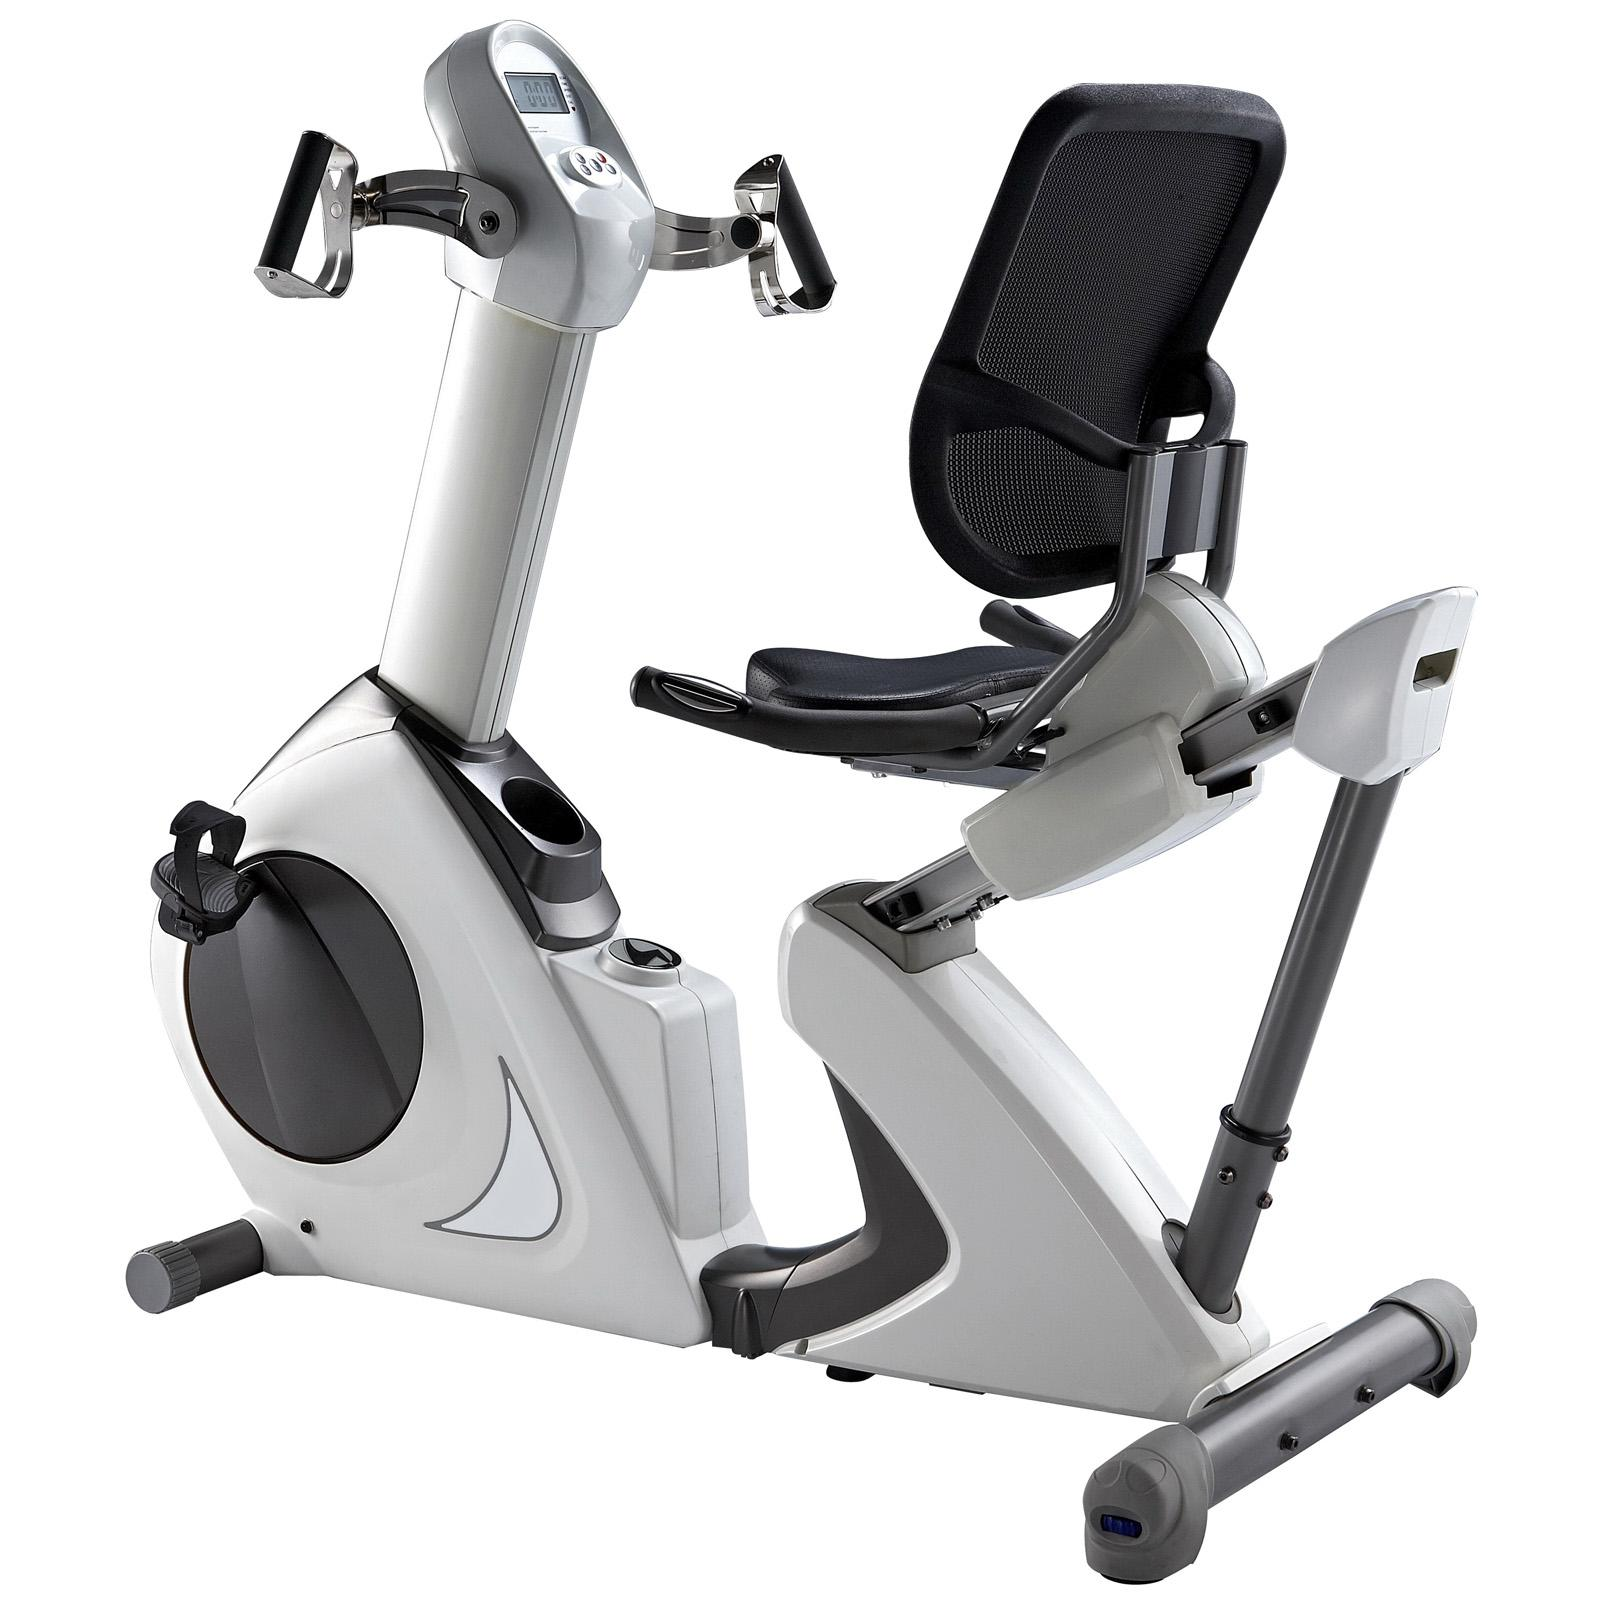 HEALTH CARE INTERNATIONAL XT-800 PhysioCycle Recumbent Cy...